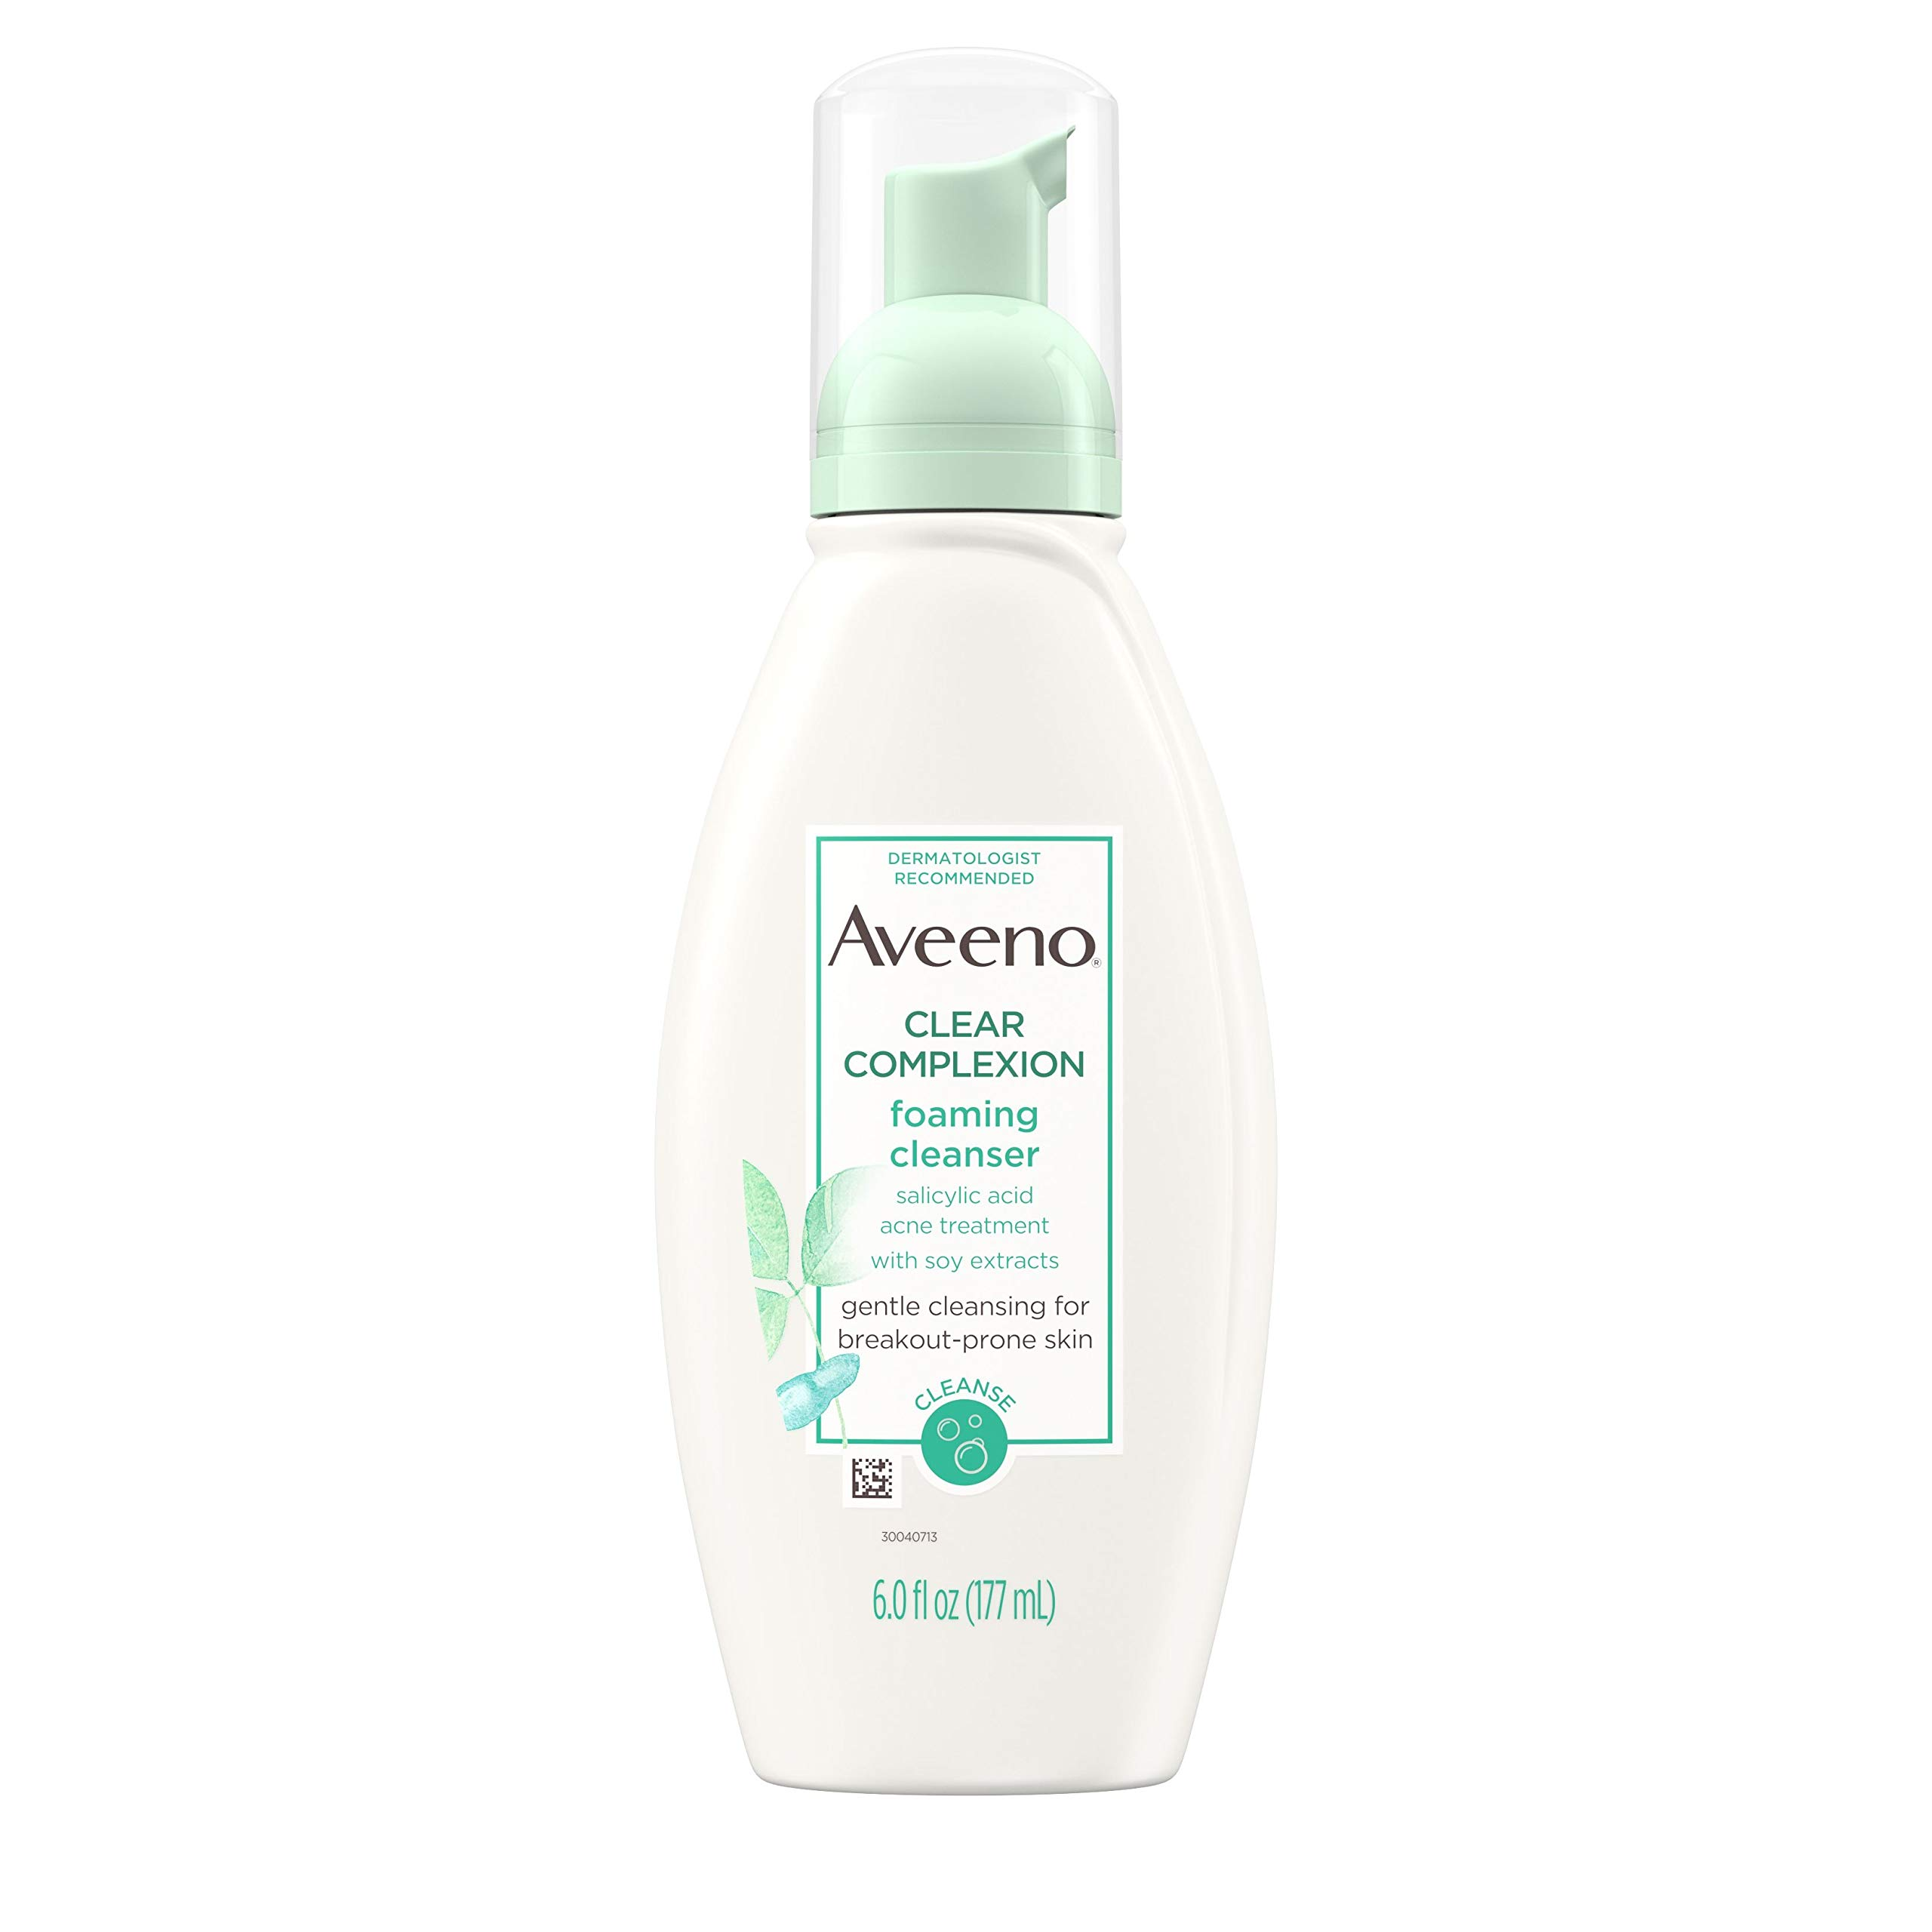 Aveeno Clear Complexion Foaming Oil-Free Facial Cleanser with Salicylic Acid for Breakout Prone Skin, Face Wash with Soy Extracts, Hypoallergenic and Non-Comedogenic, 6 fl. Oz (Pack of 3) by Aveeno